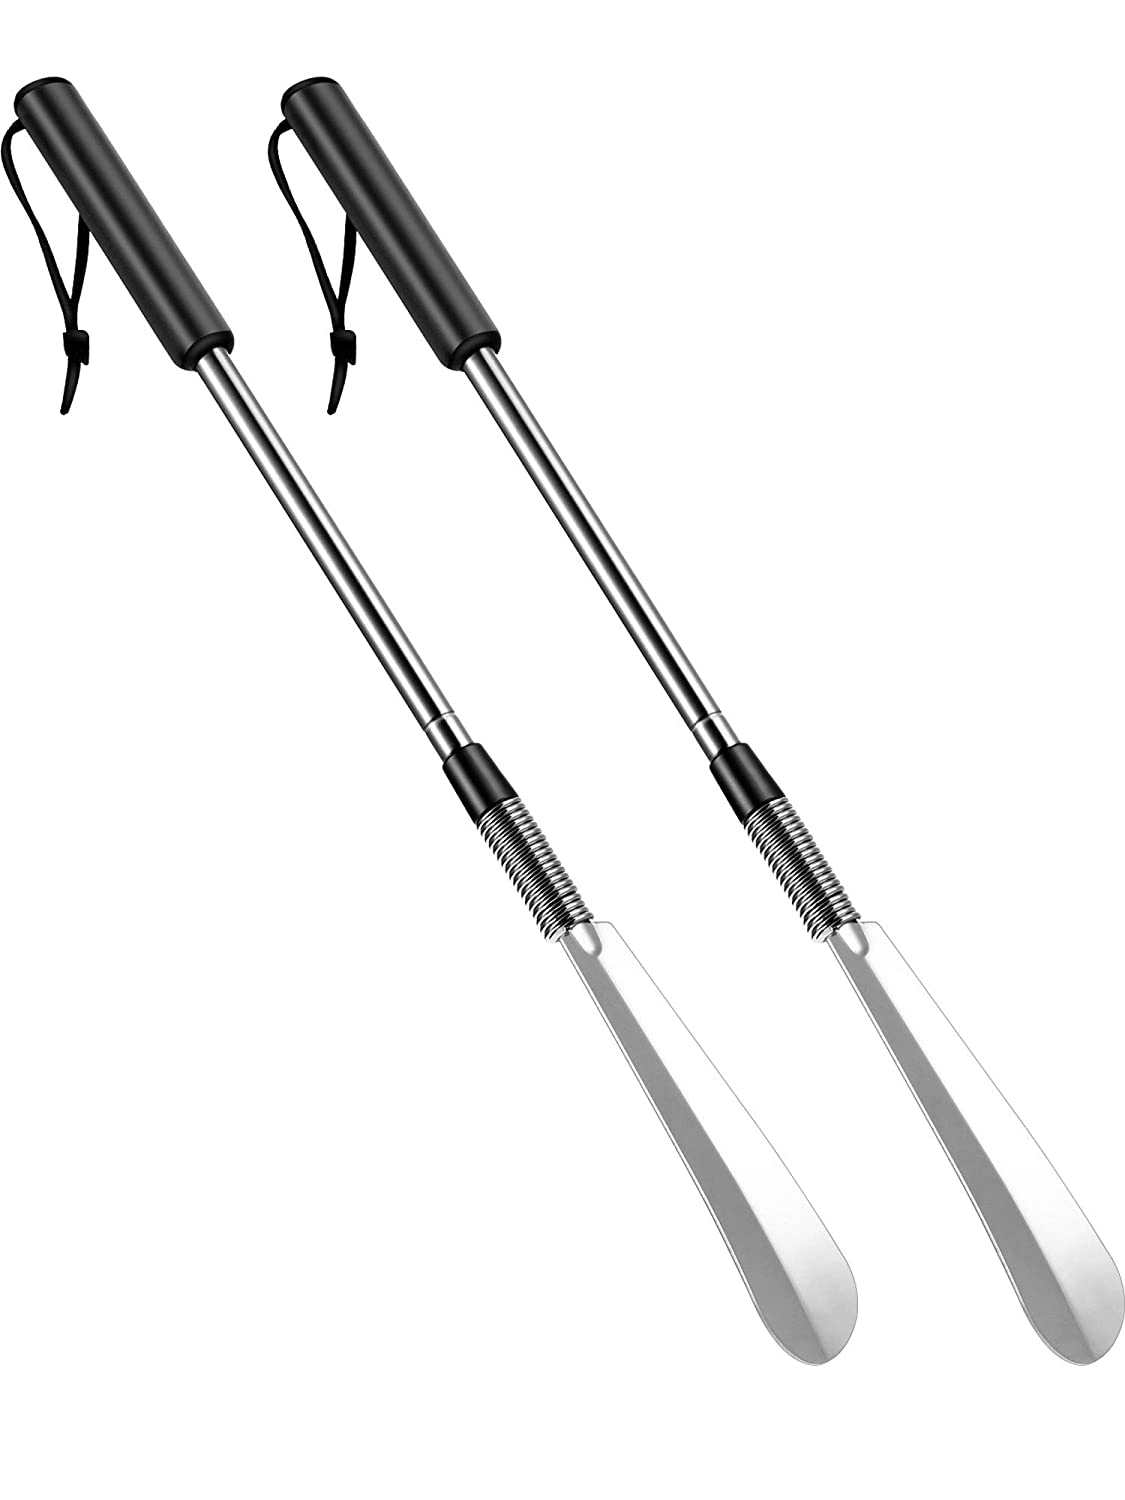 2 Pack Adjustable Shoe Horns Extra Long Handled Telescopic Expander from 16 to 31 Inches Twist to Lock Long Handle Shoe Horn, Stainless Steel